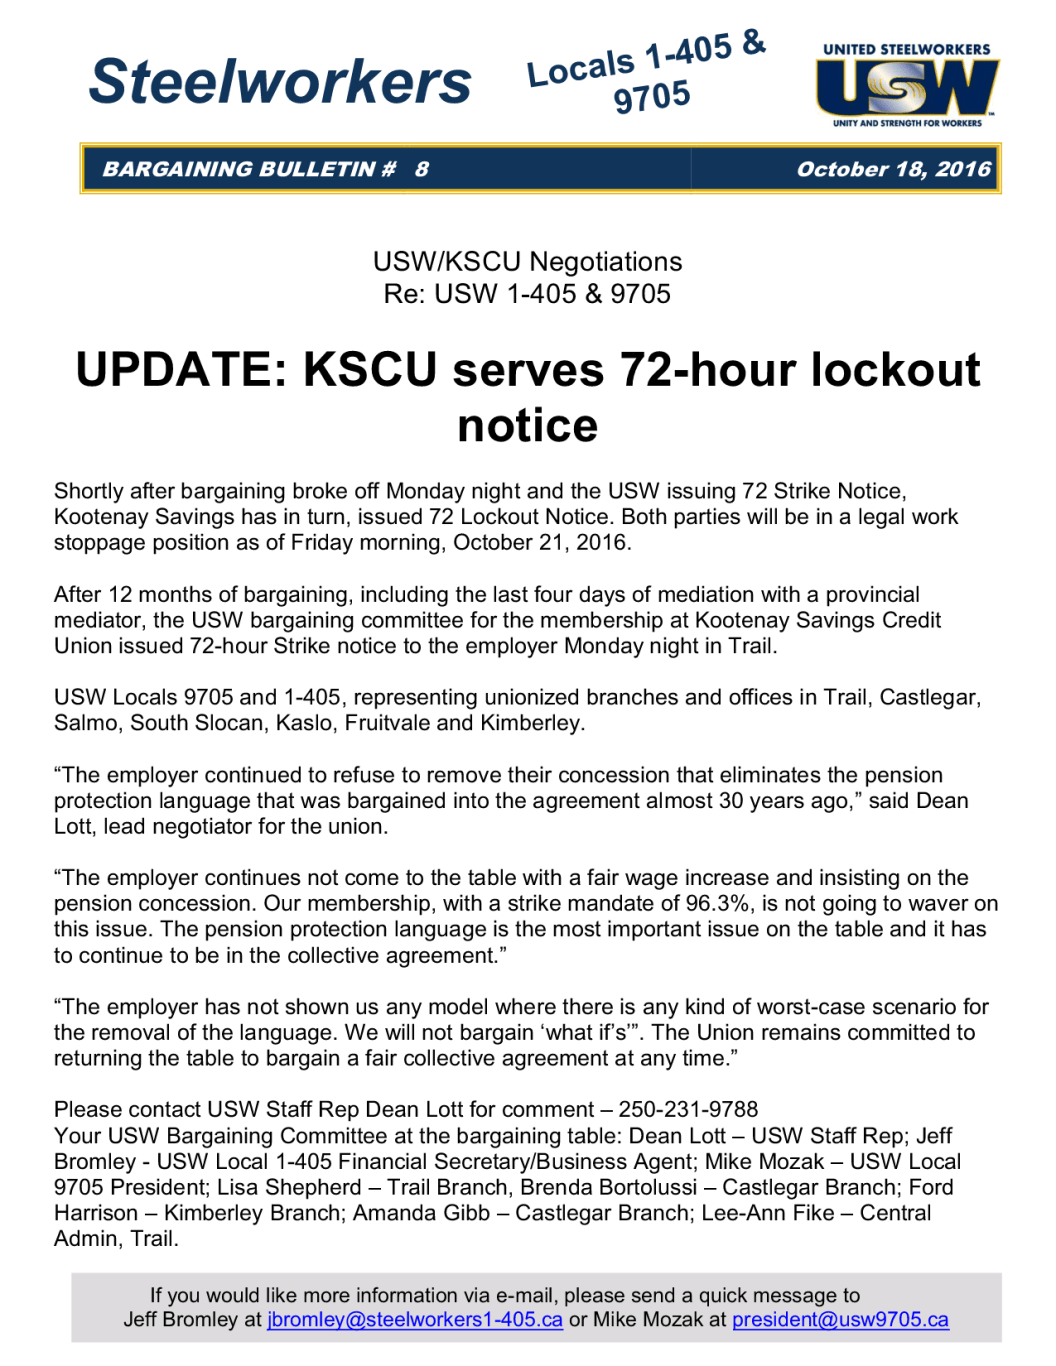 Kscu Replies To Union With 72 Hr Lockout Notice Usw 9705